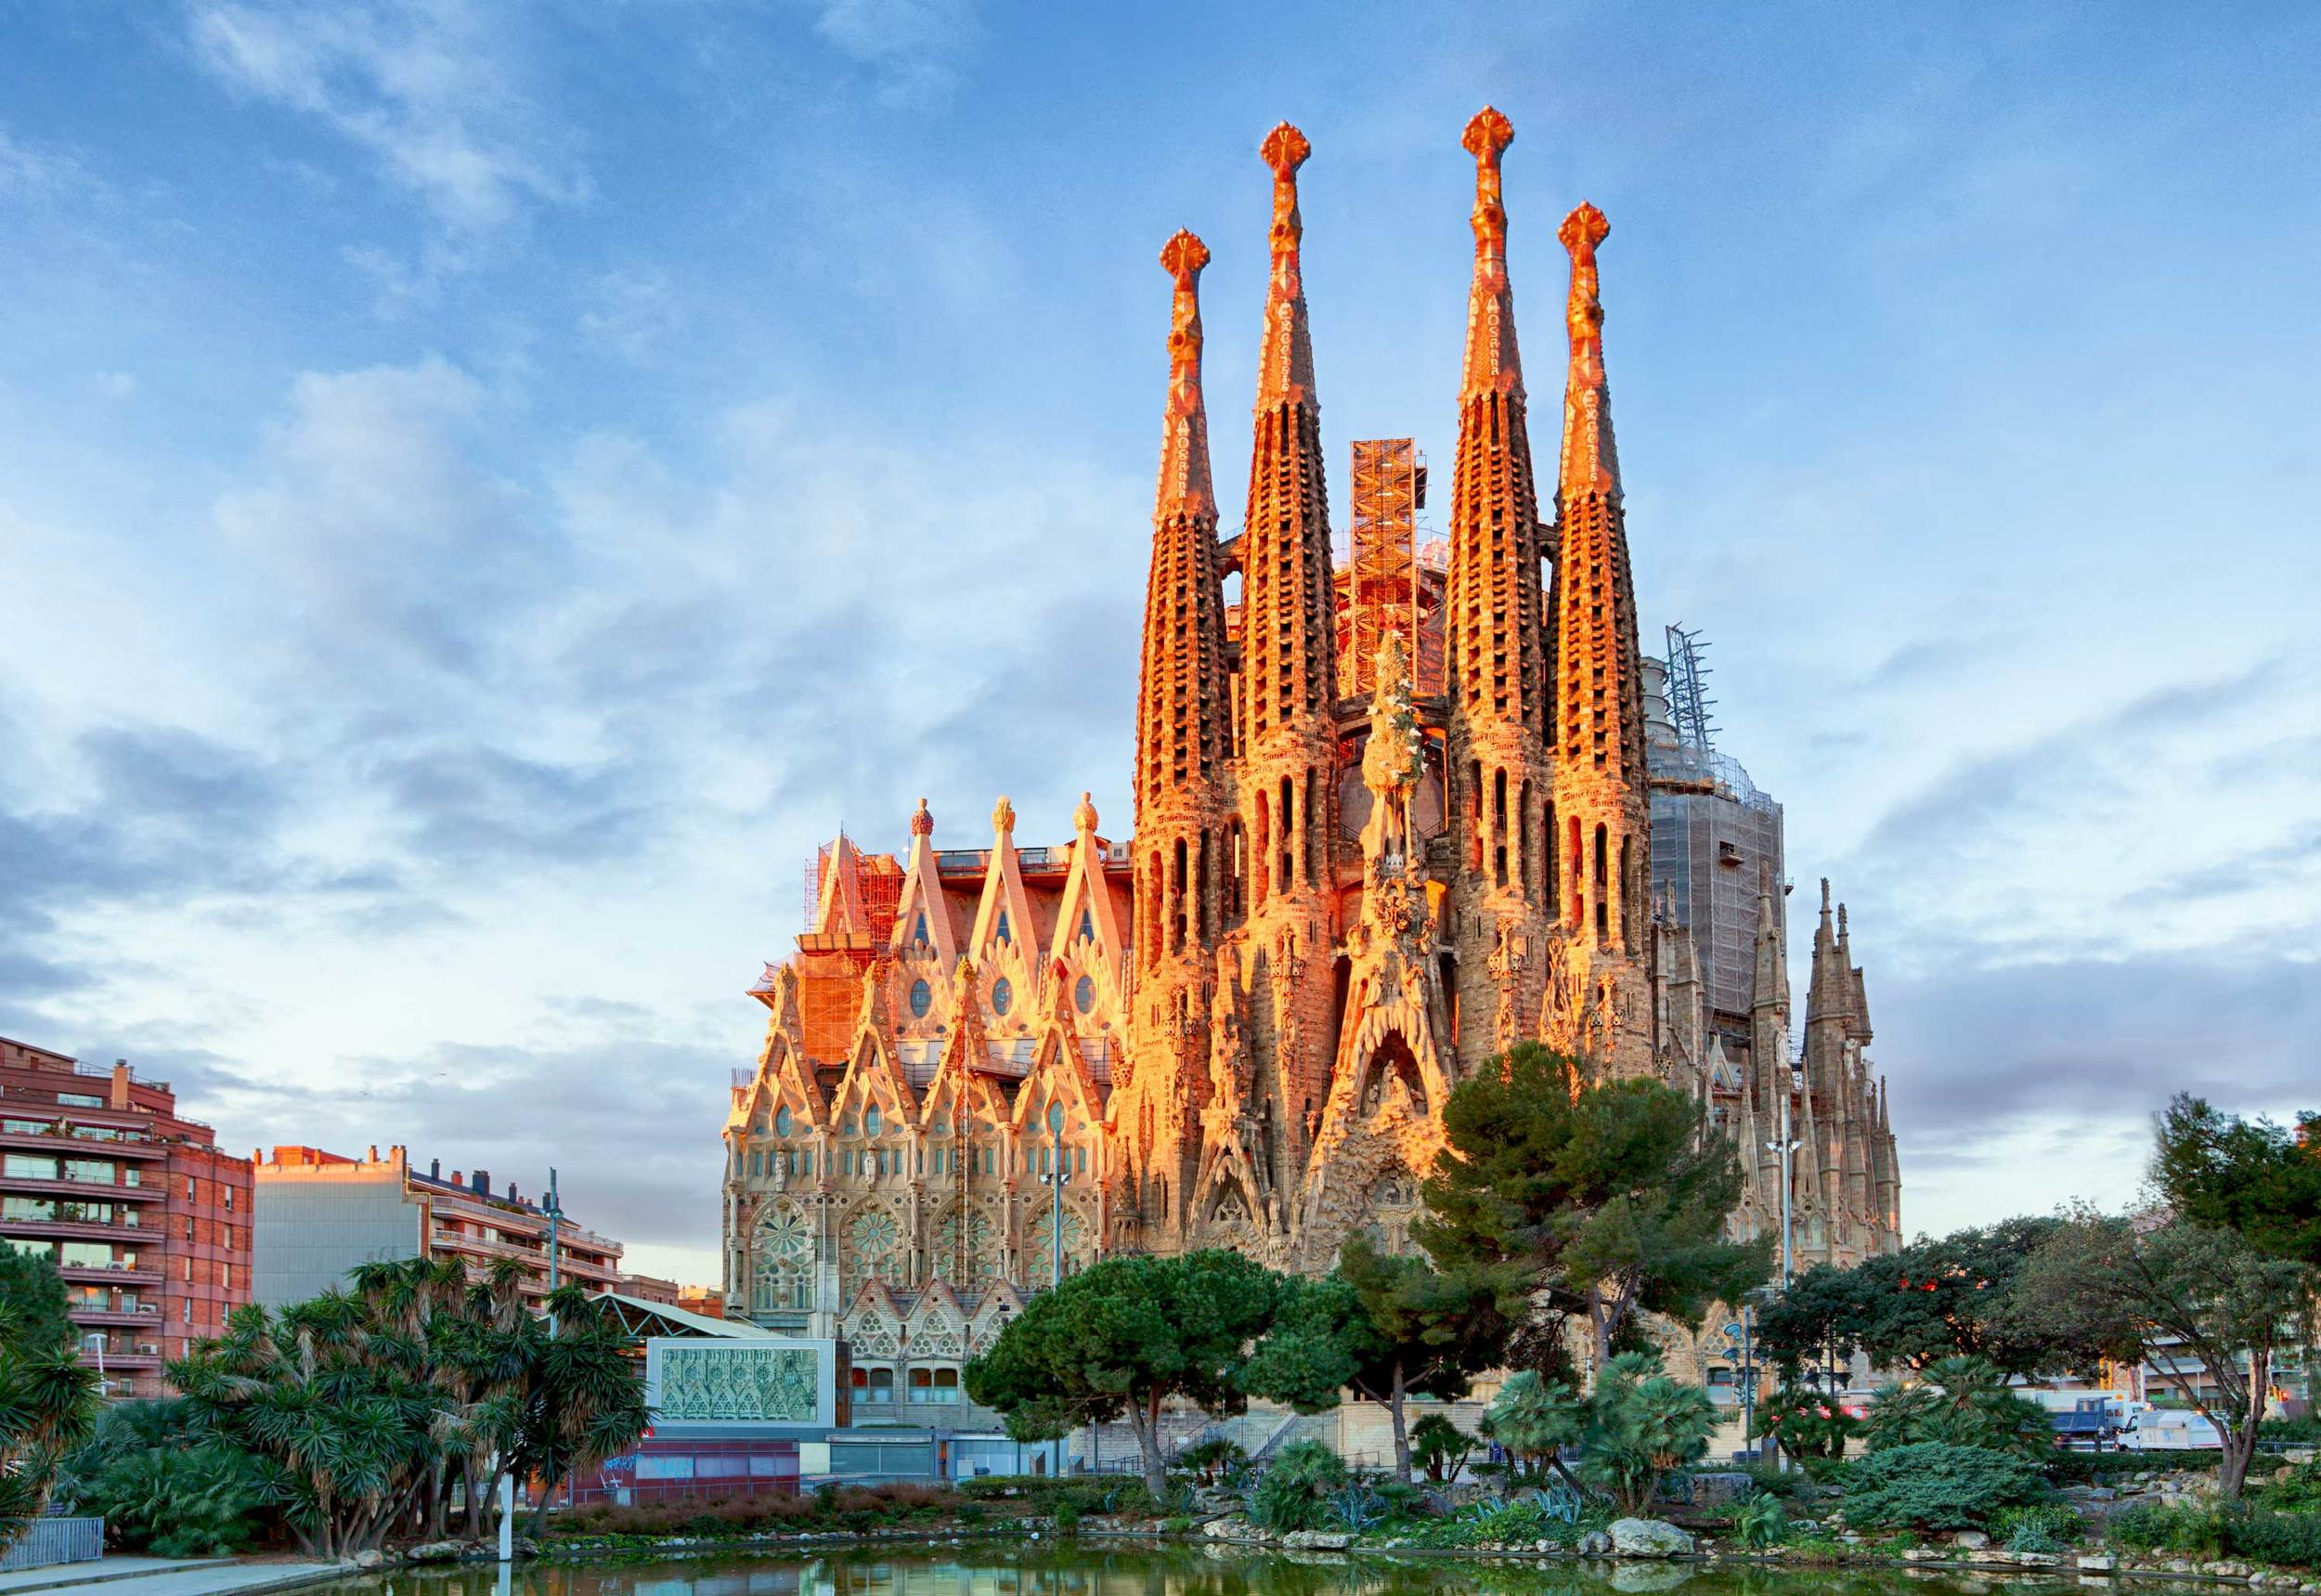 sagrada familia, one of the best places to visit in Spain